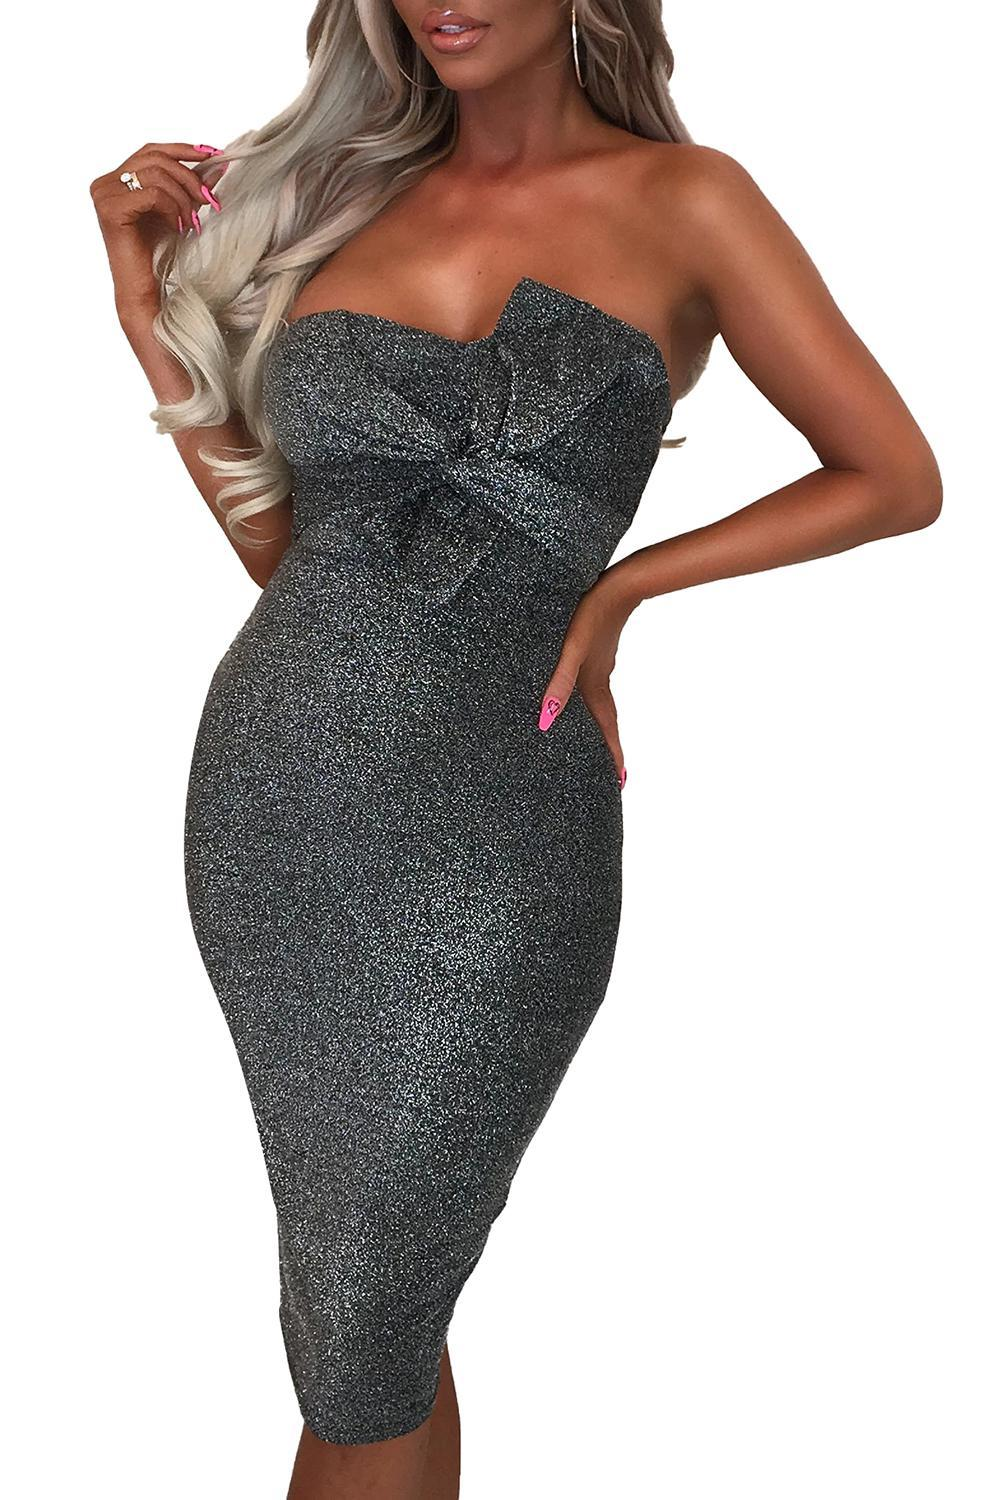 <font><b>Blue</b></font>/Gray/<font><b>Pink</b></font> Luxe Glam Knot Front Bandeau Midi <font><b>Dress</b></font> <font><b>Women</b></font> <font><b>Sexy</b></font> Strapless Off Shoulder Sparkly Fabric Party Club <font><b>Dresses</b></font> S-XL image